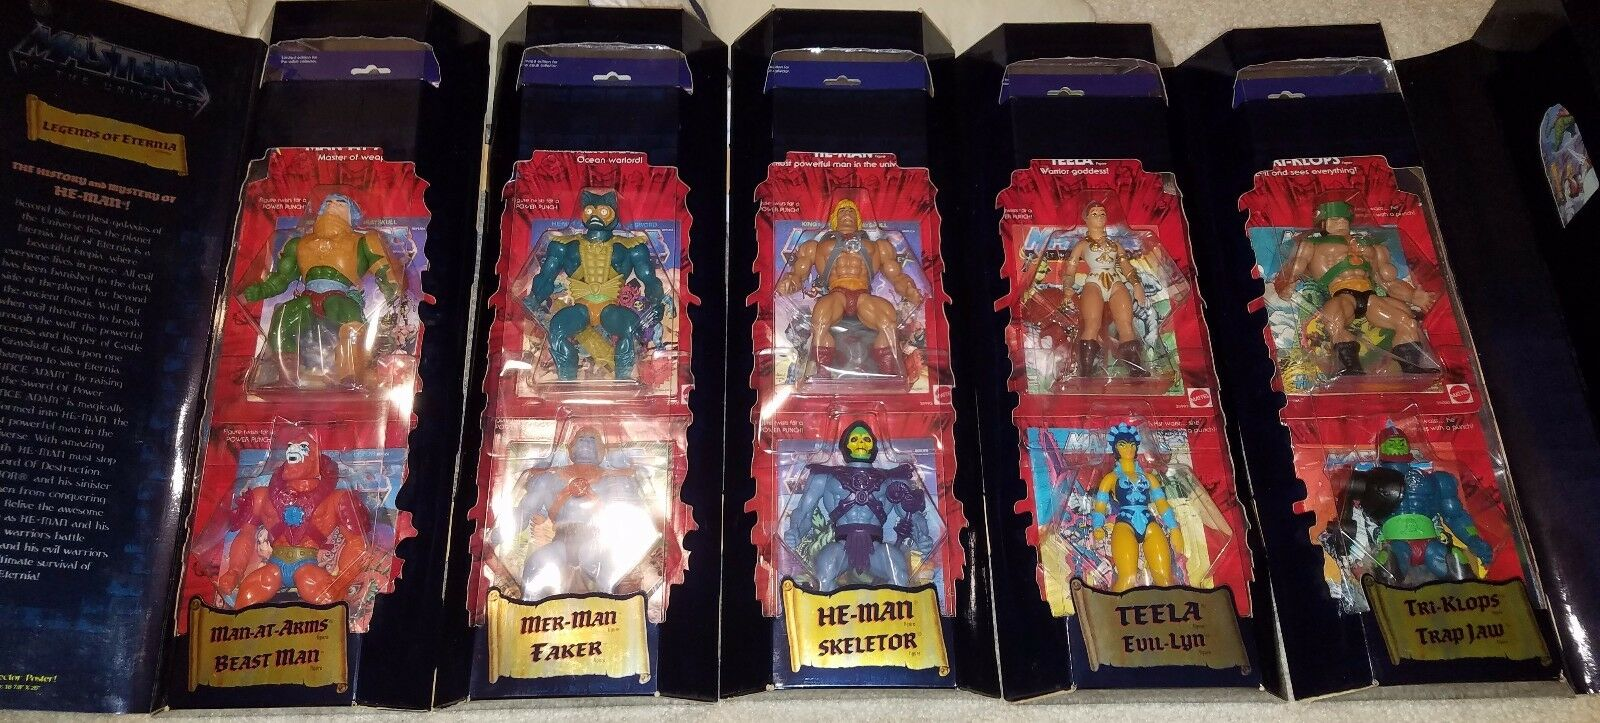 MOTU Legends of Eternia Showcase 10-pack! JCPenny Exclusive! Extremely Rare!